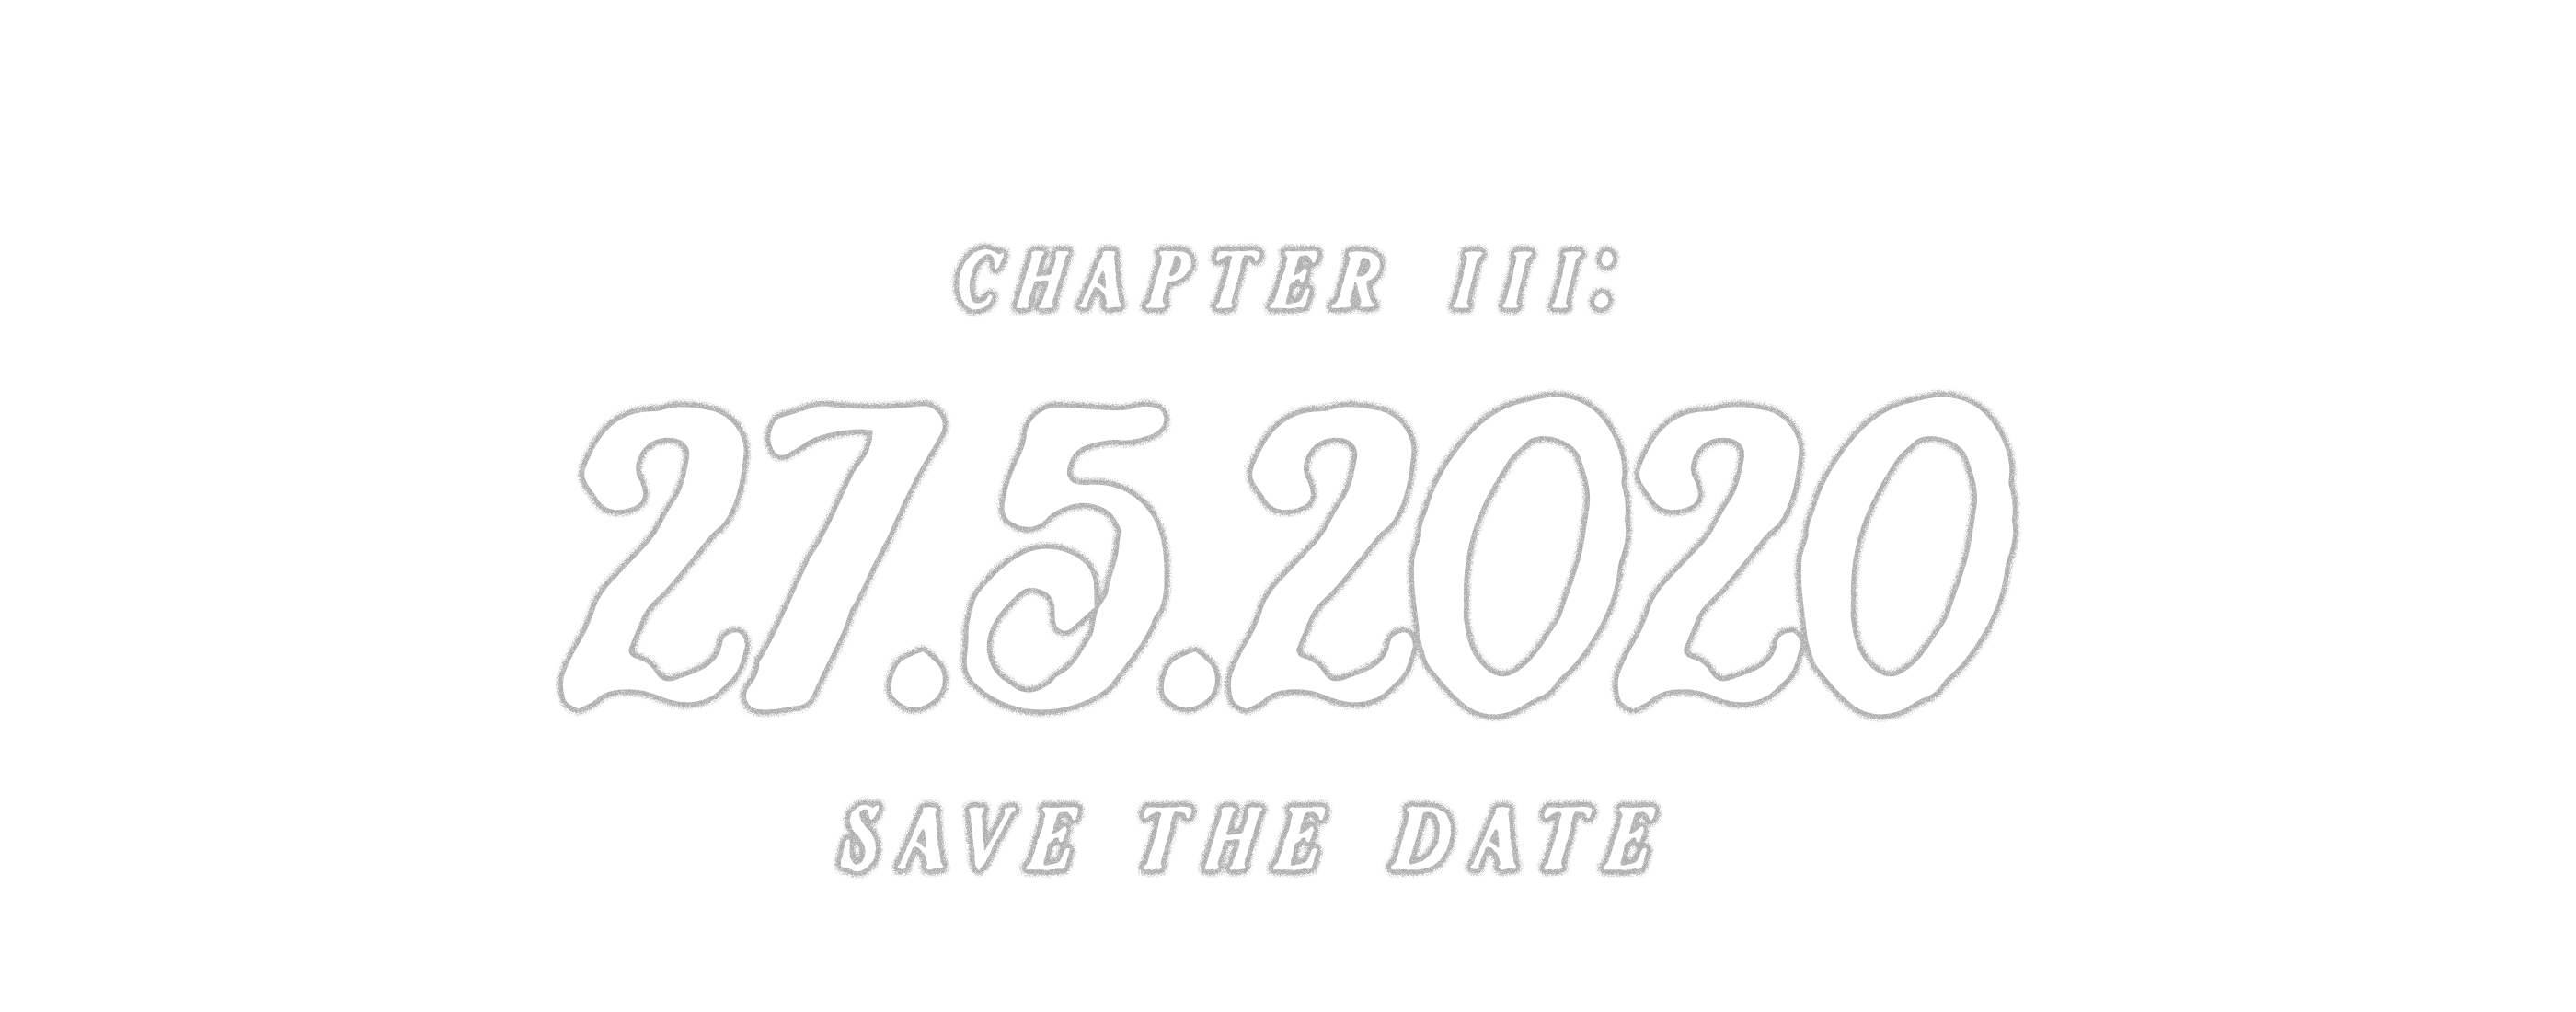 Chapter III: 27.5.2020 Save the date